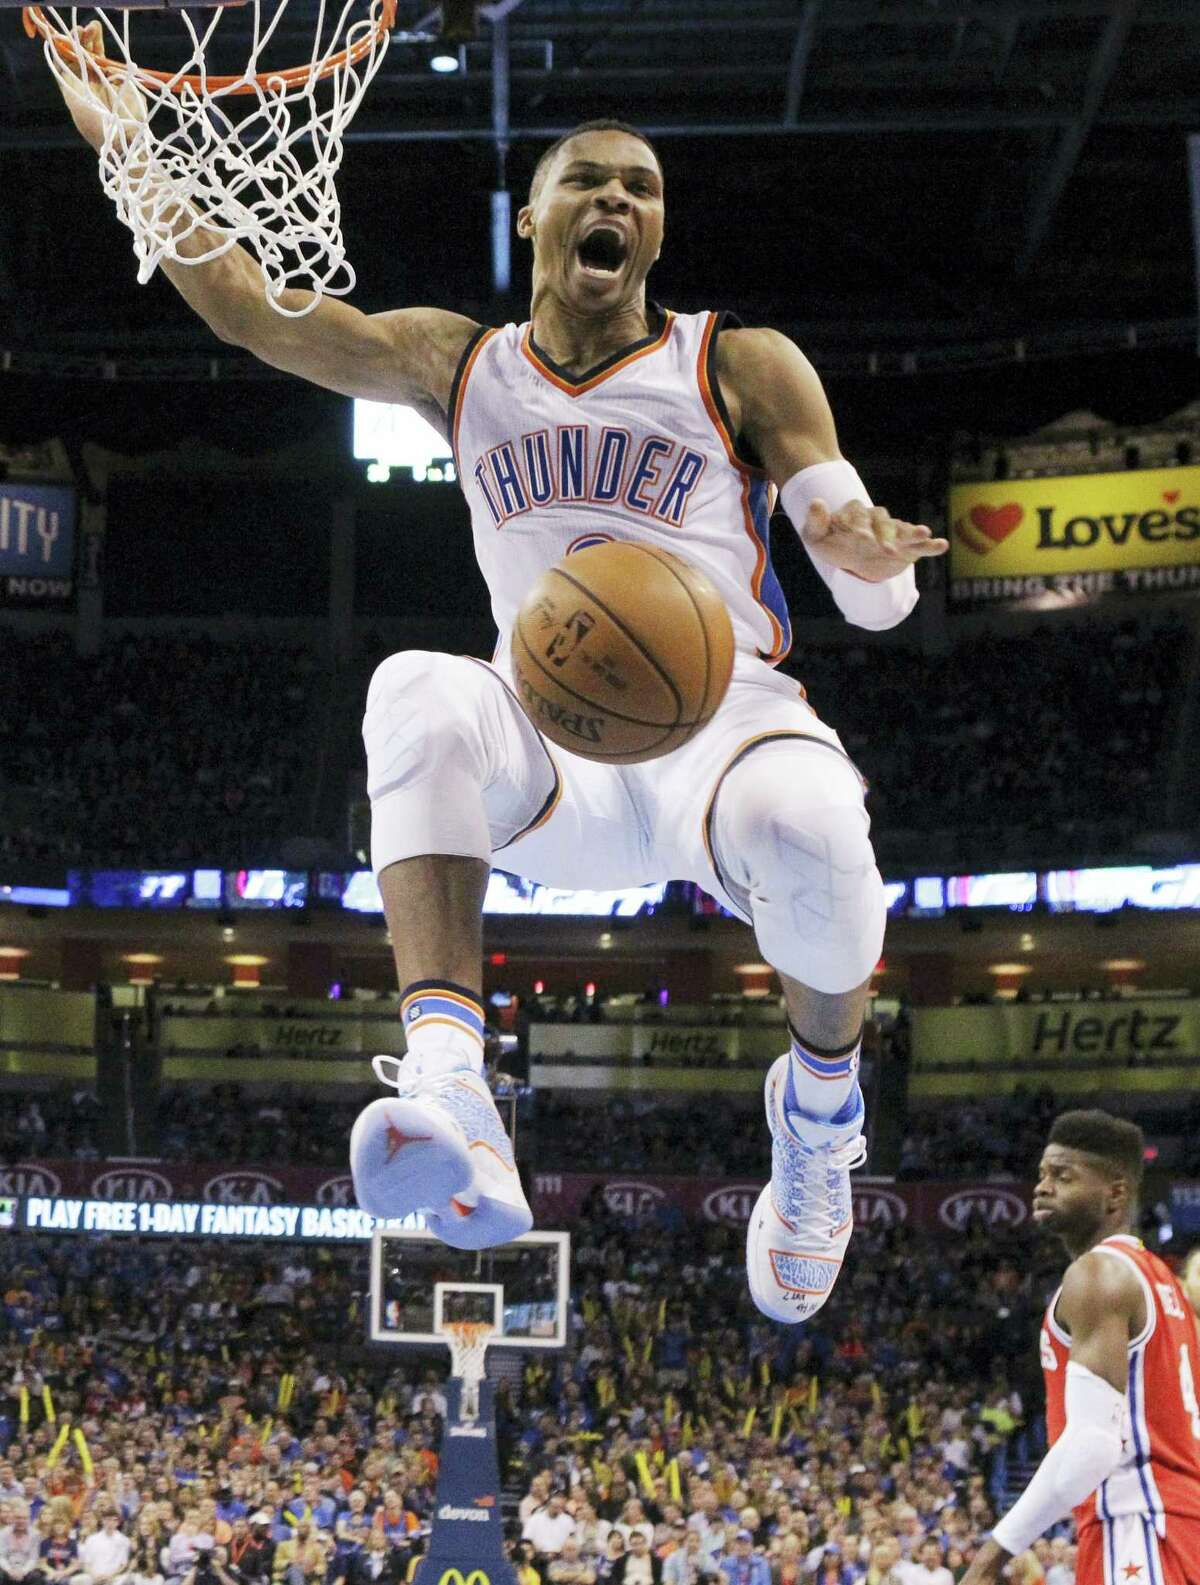 In this Nov. 13, 2015 photo, Oklahoma City Thunder guard Russell Westbrook celebrates following a dunk during the second quarter of an NBA basketball game against the Philadelphia 76ers, in Oklahoma City.